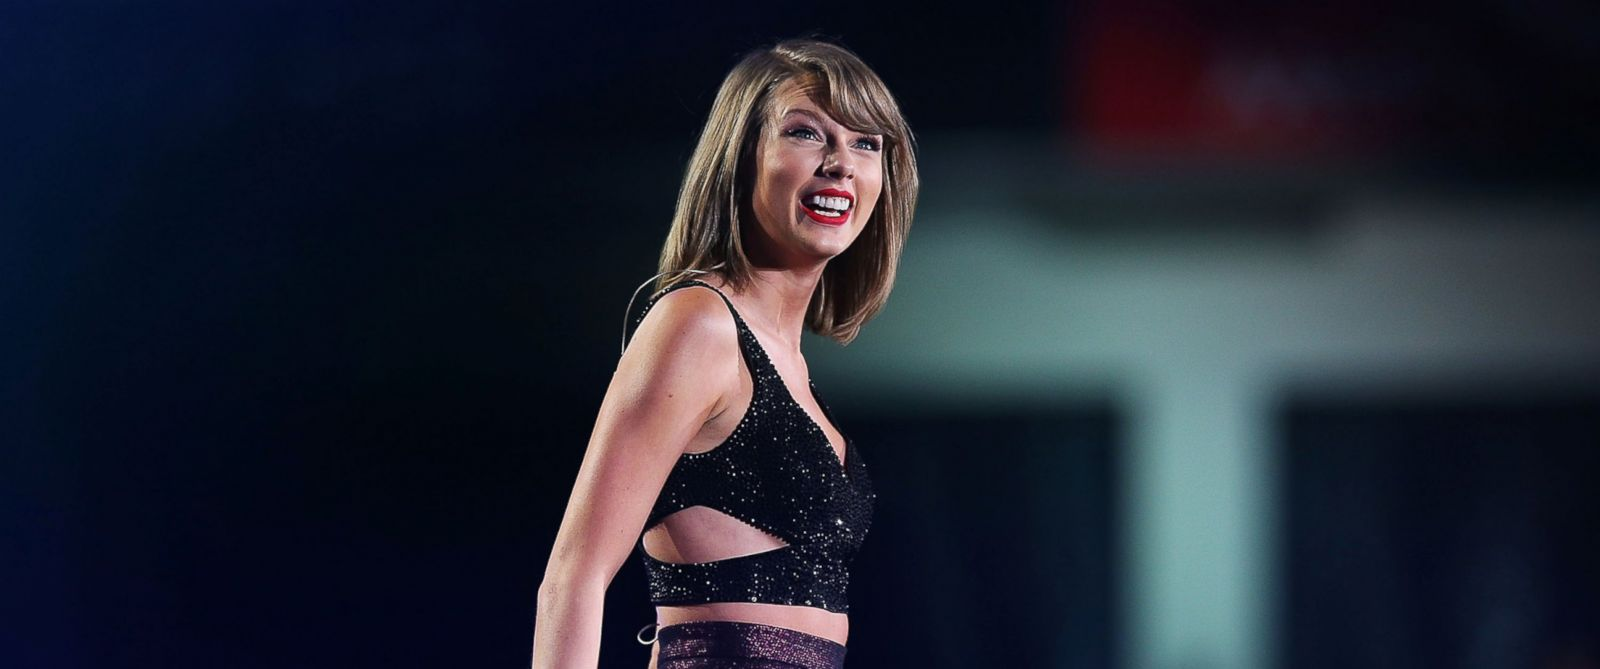 PHOTO: Taylor Swift performs during her 1989 World Tour at AAMI Park on Dec. 10, 2015 in Melbourne, Australia.